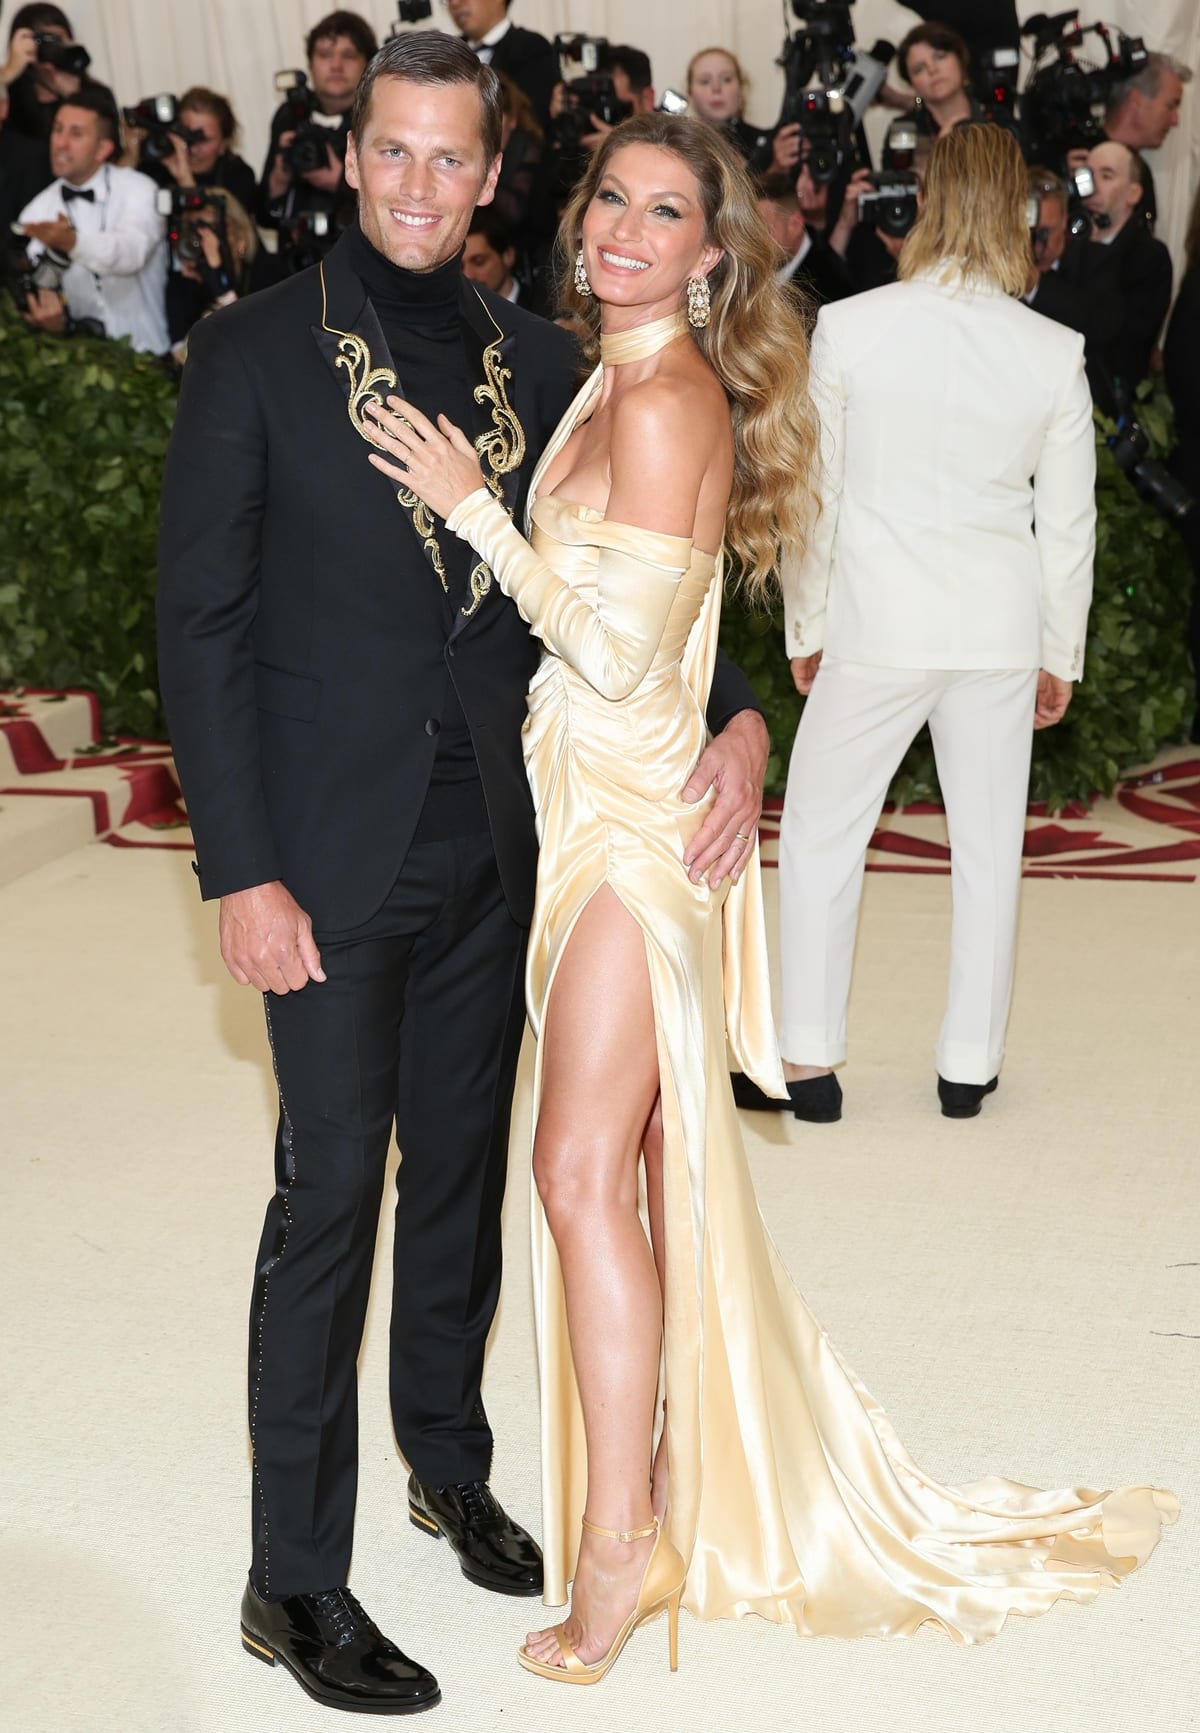 Gisele Bündchen in an eco-friendly long, gold Versace dress with Tom Brady in an embellished tuxedo at the 2018 Met Gala